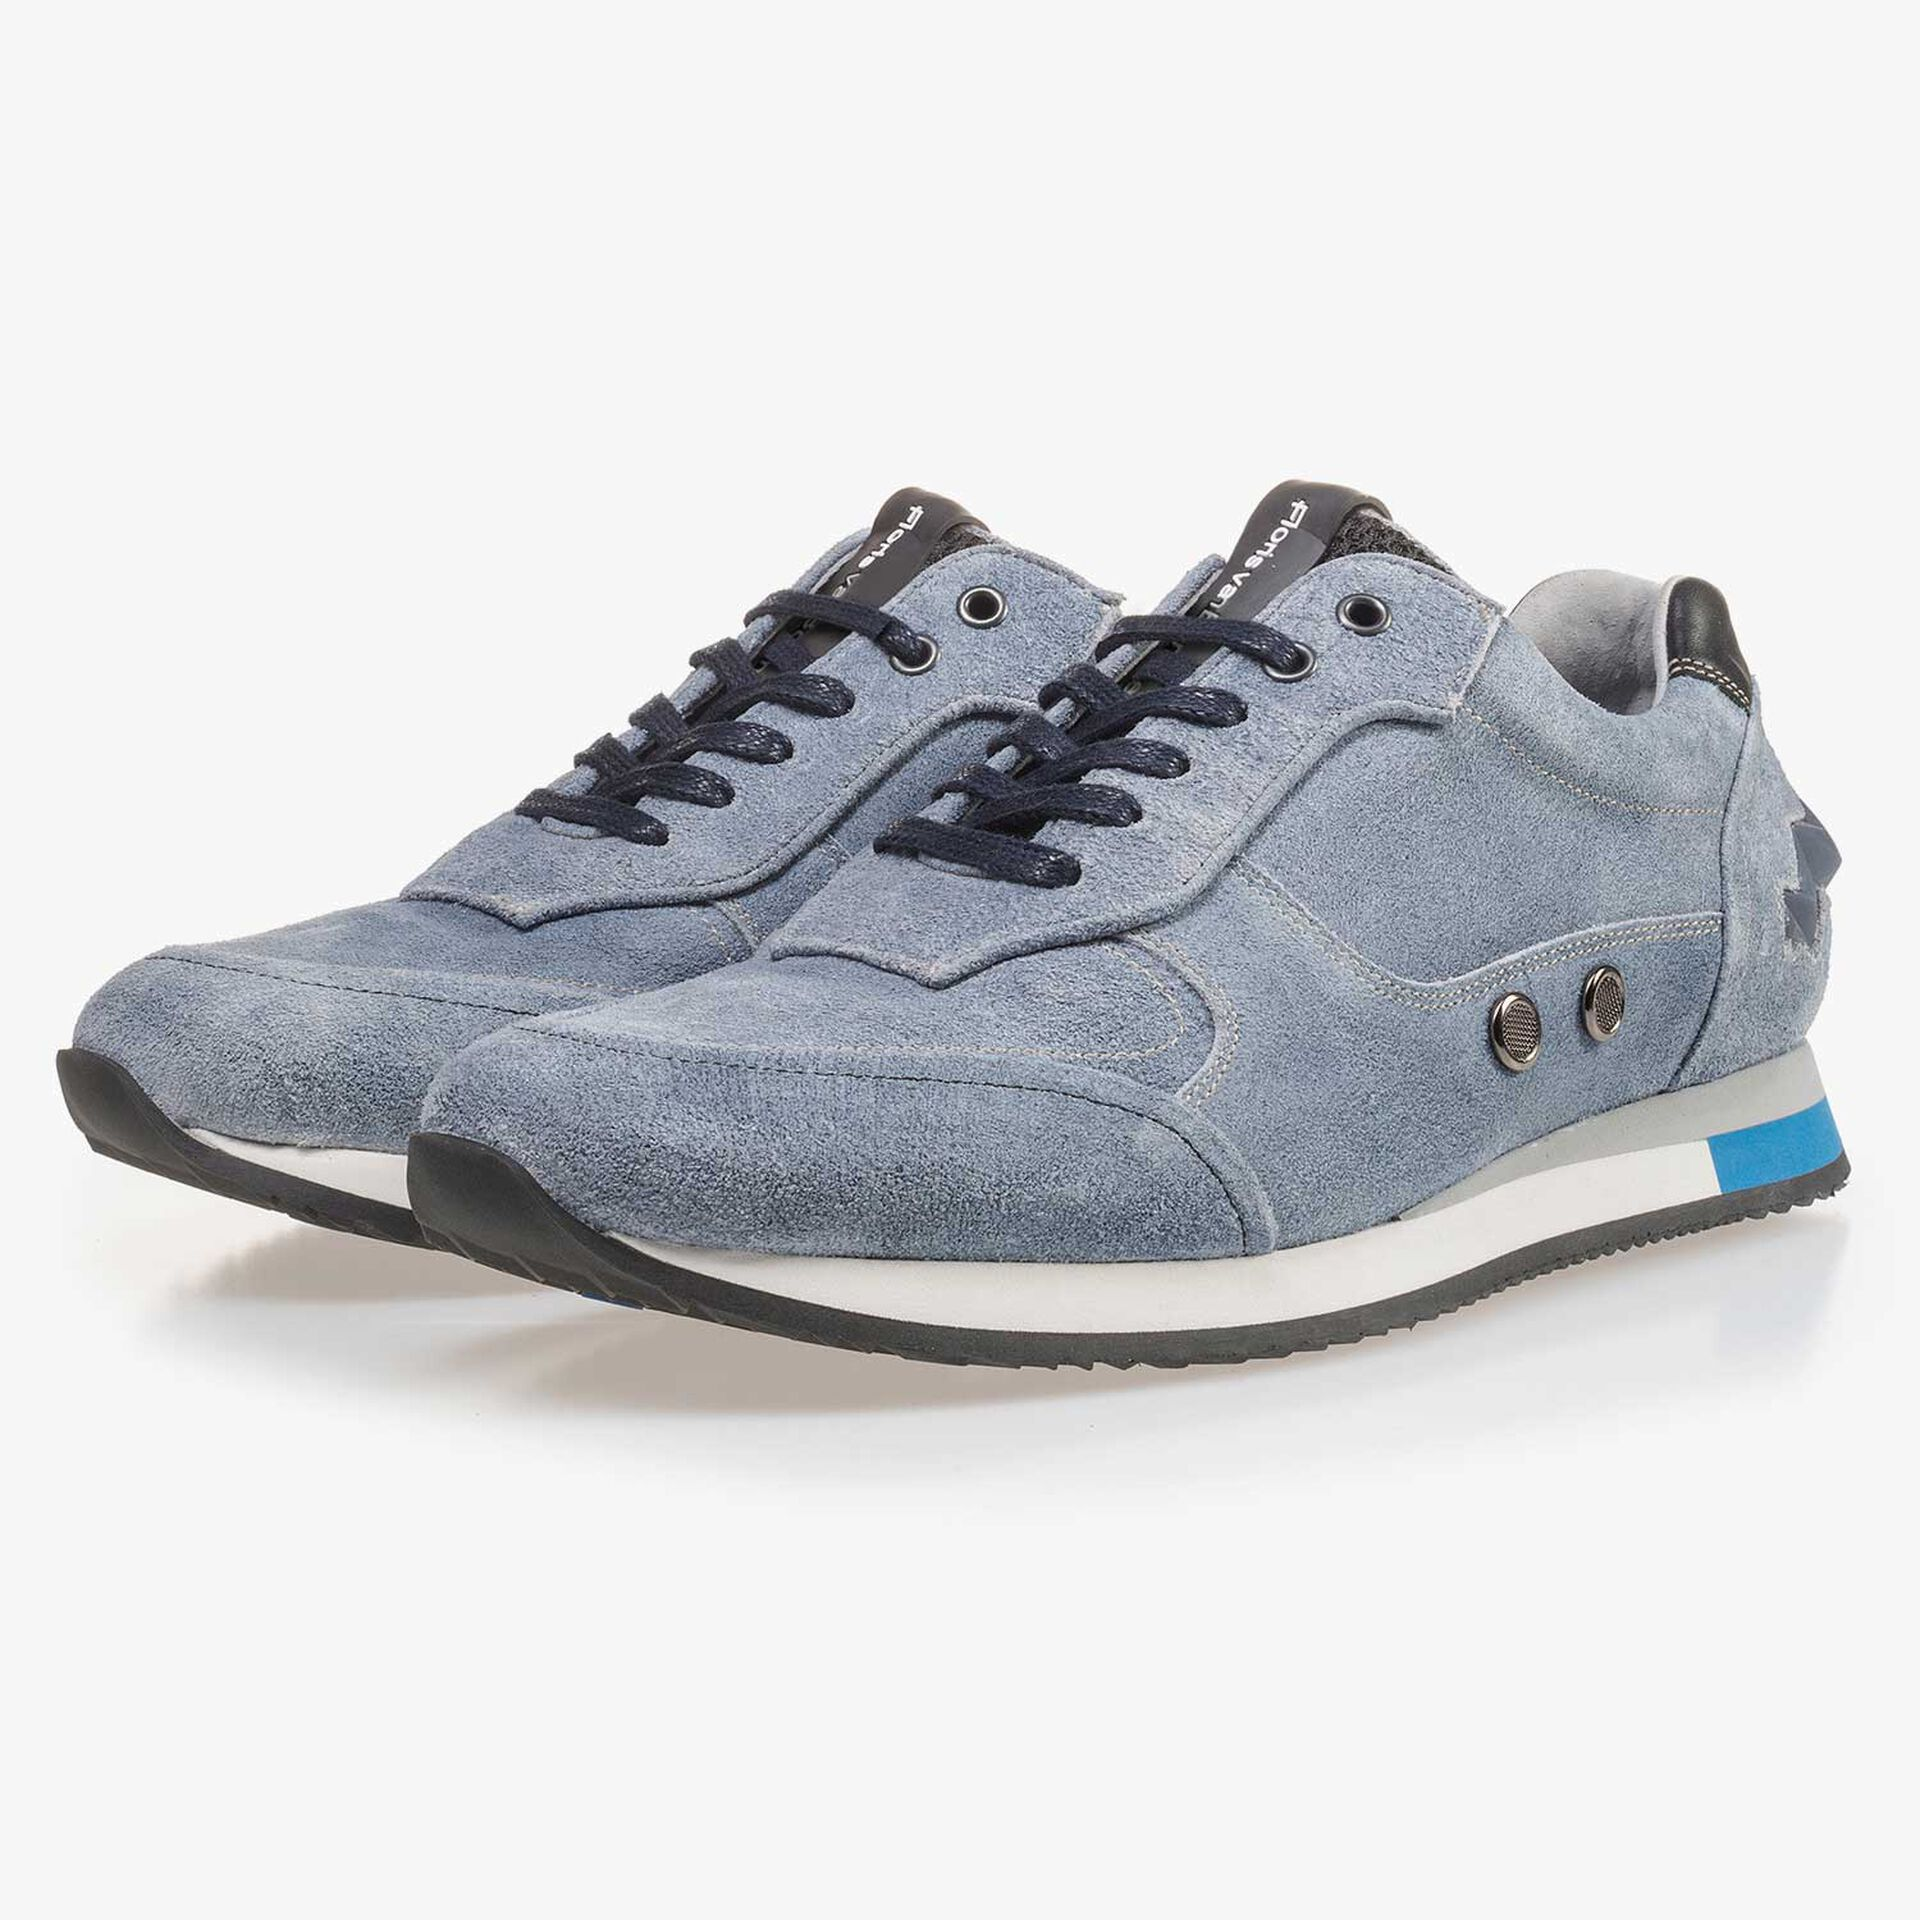 Light blue suede leather sneaker